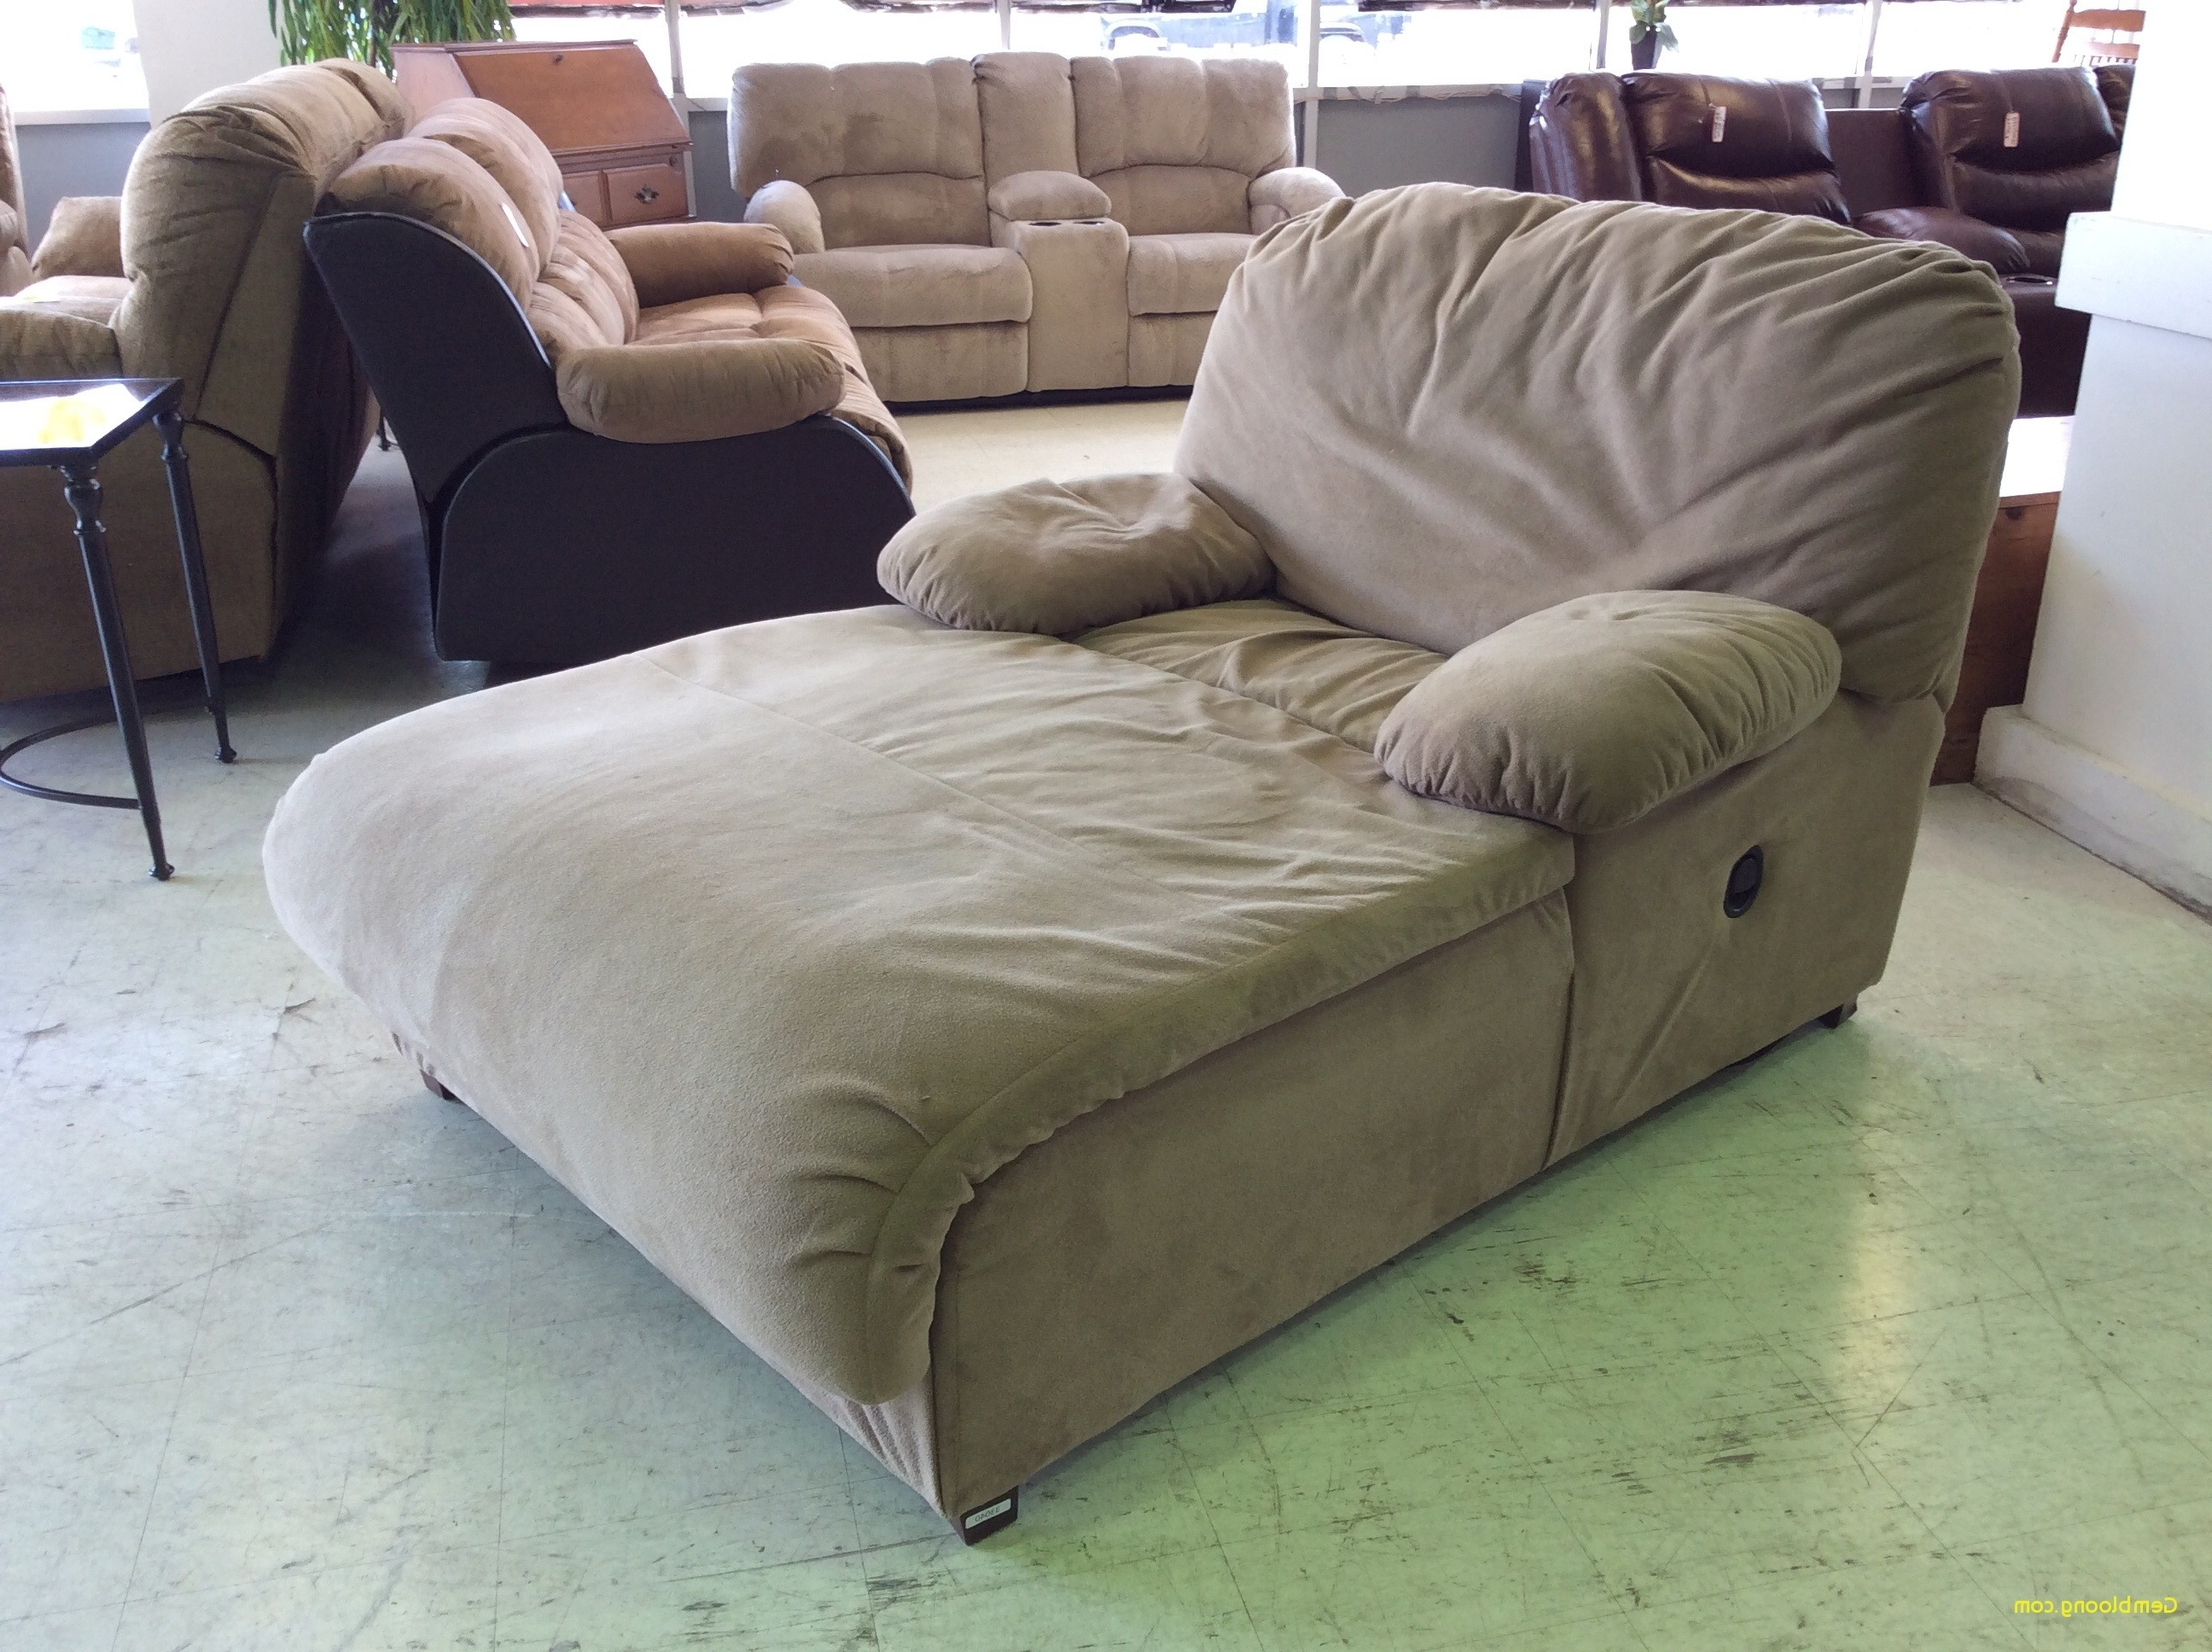 Most Recent Chaise Lounge Recliners Best Of Chaise Lounge Recliners – Home Within Recliner Chaise Lounges (View 8 of 15)